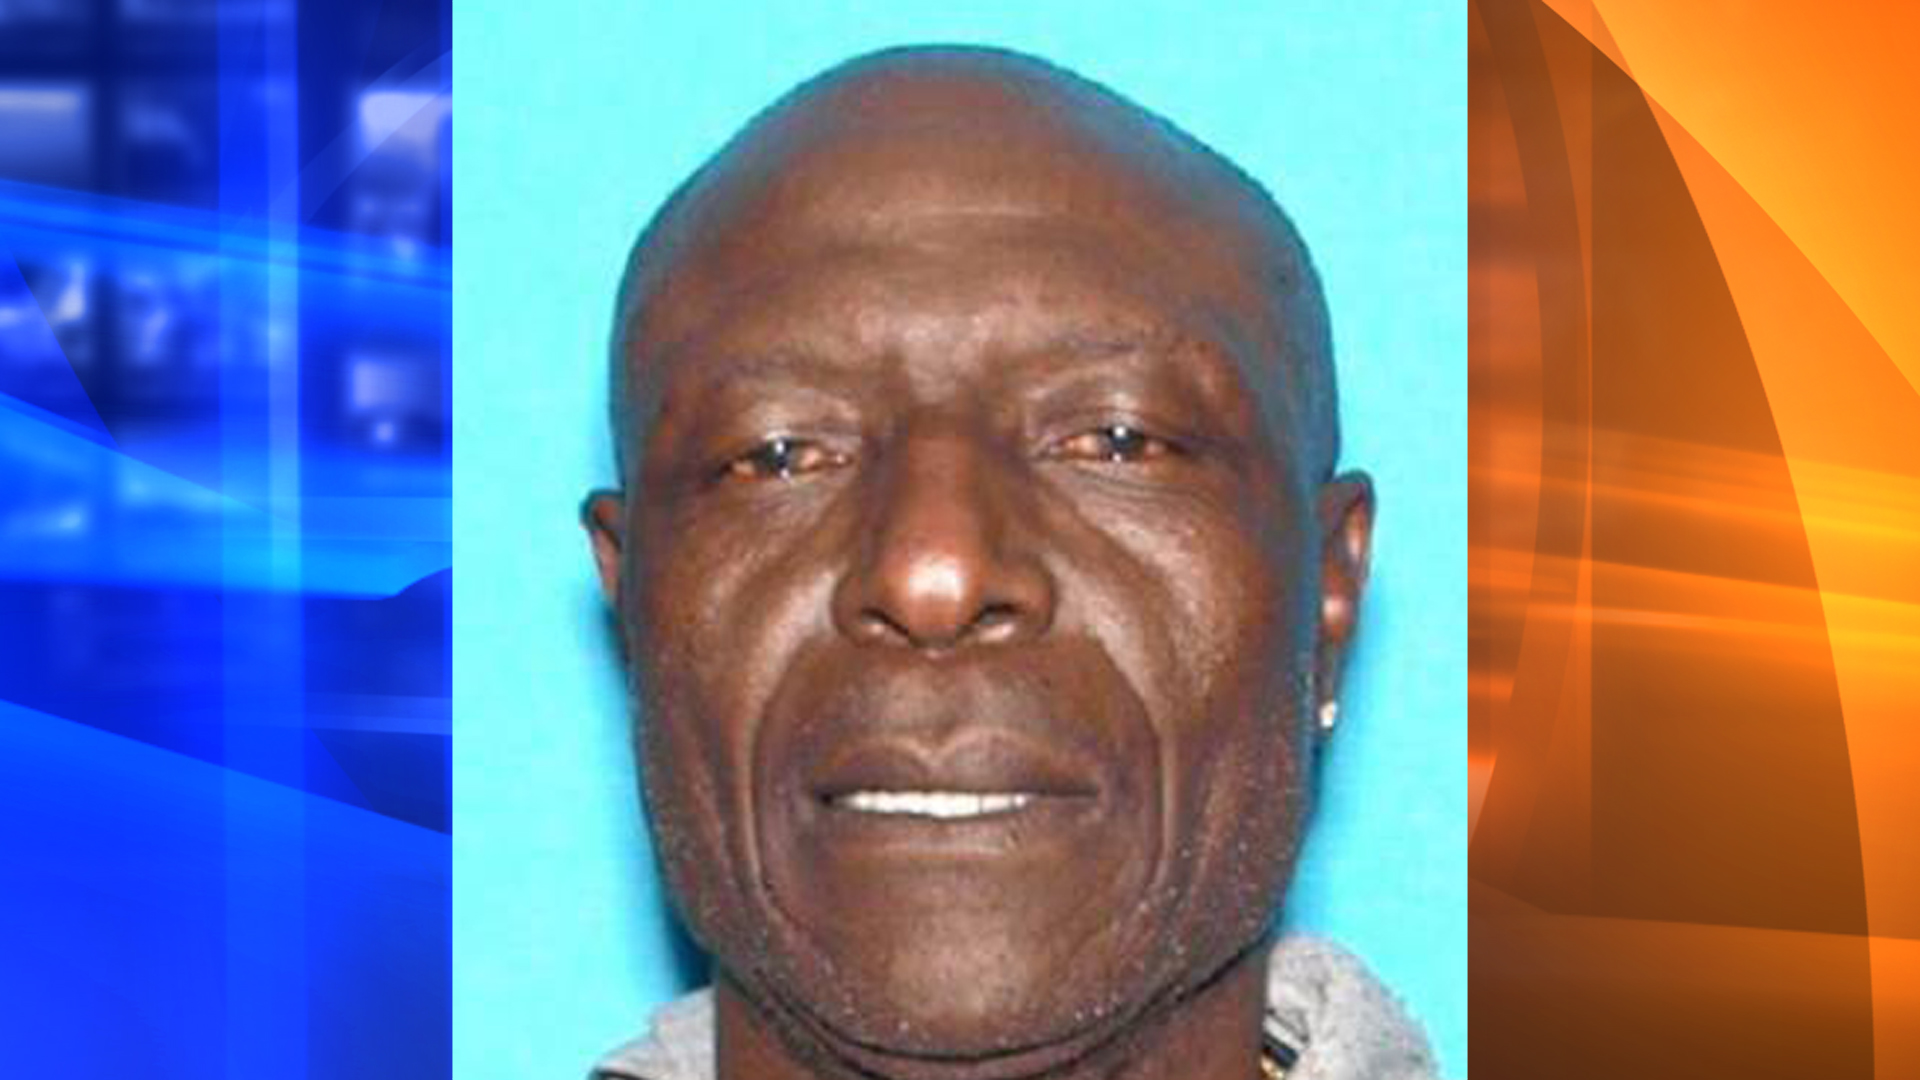 John Allen Leigh appears in a photo released by the Inglewood Police Department on Feb. 26, 2020.